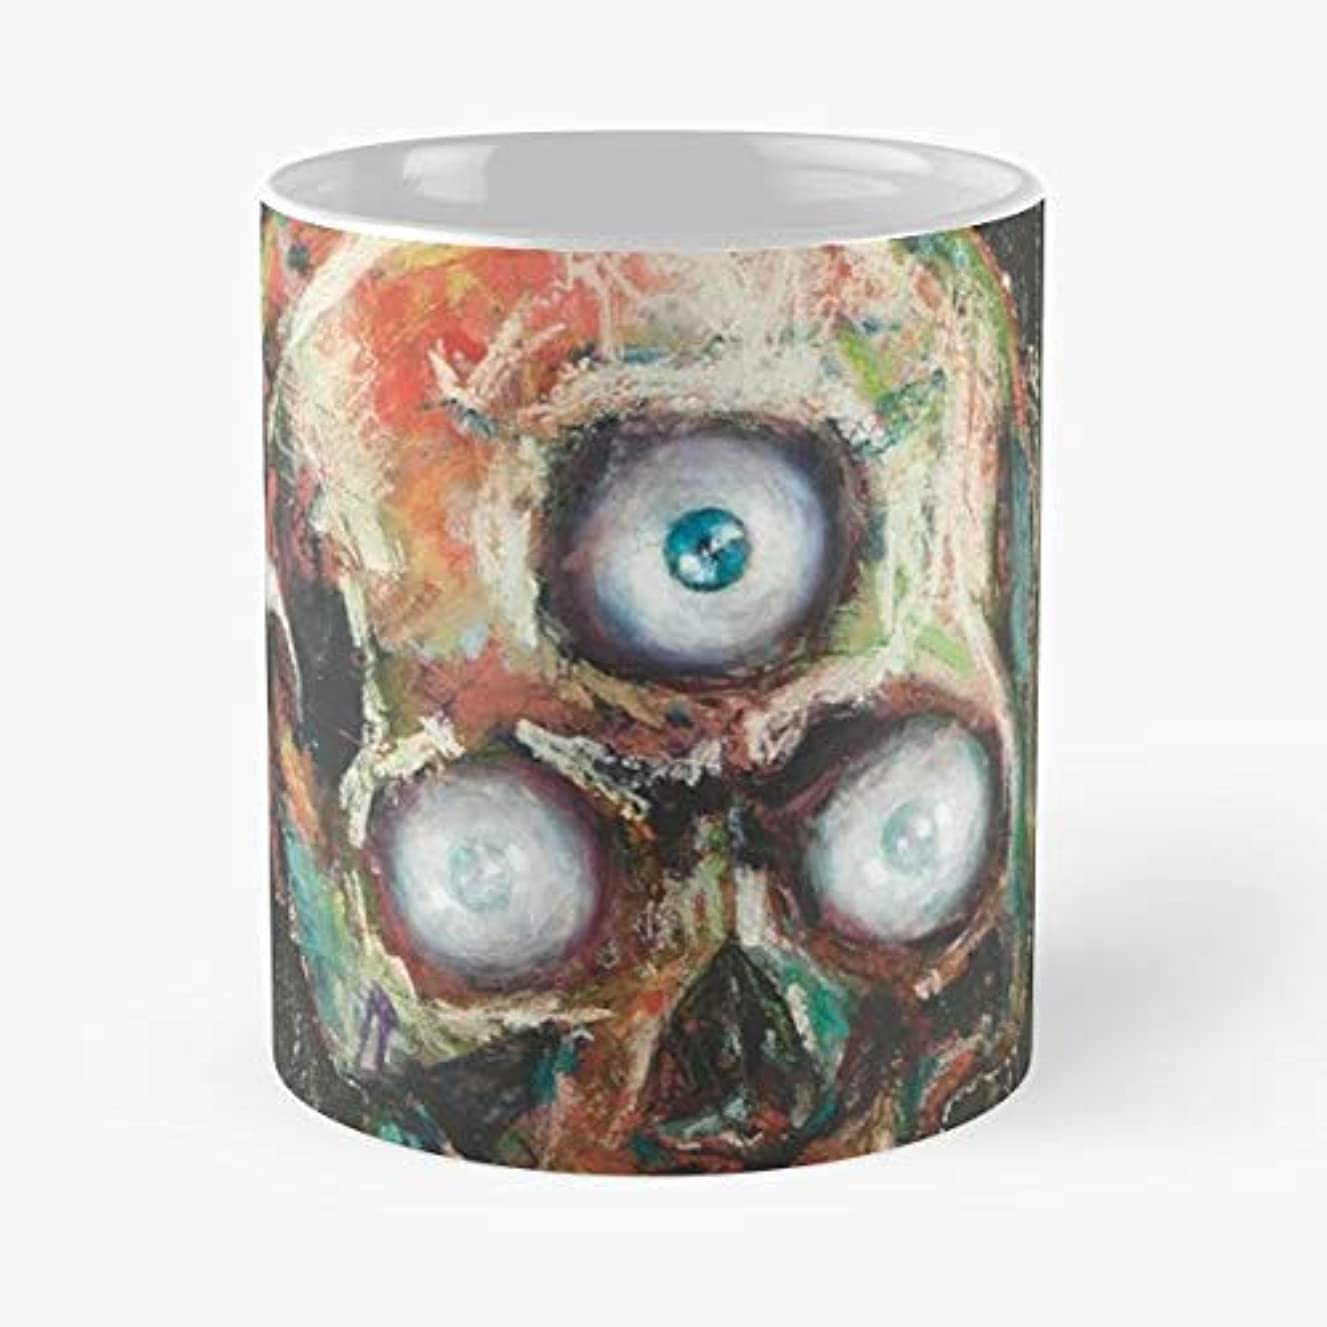 Insight Enlightenment Oneness - Coffee Mugs Unique Ceramic Novelty Cup